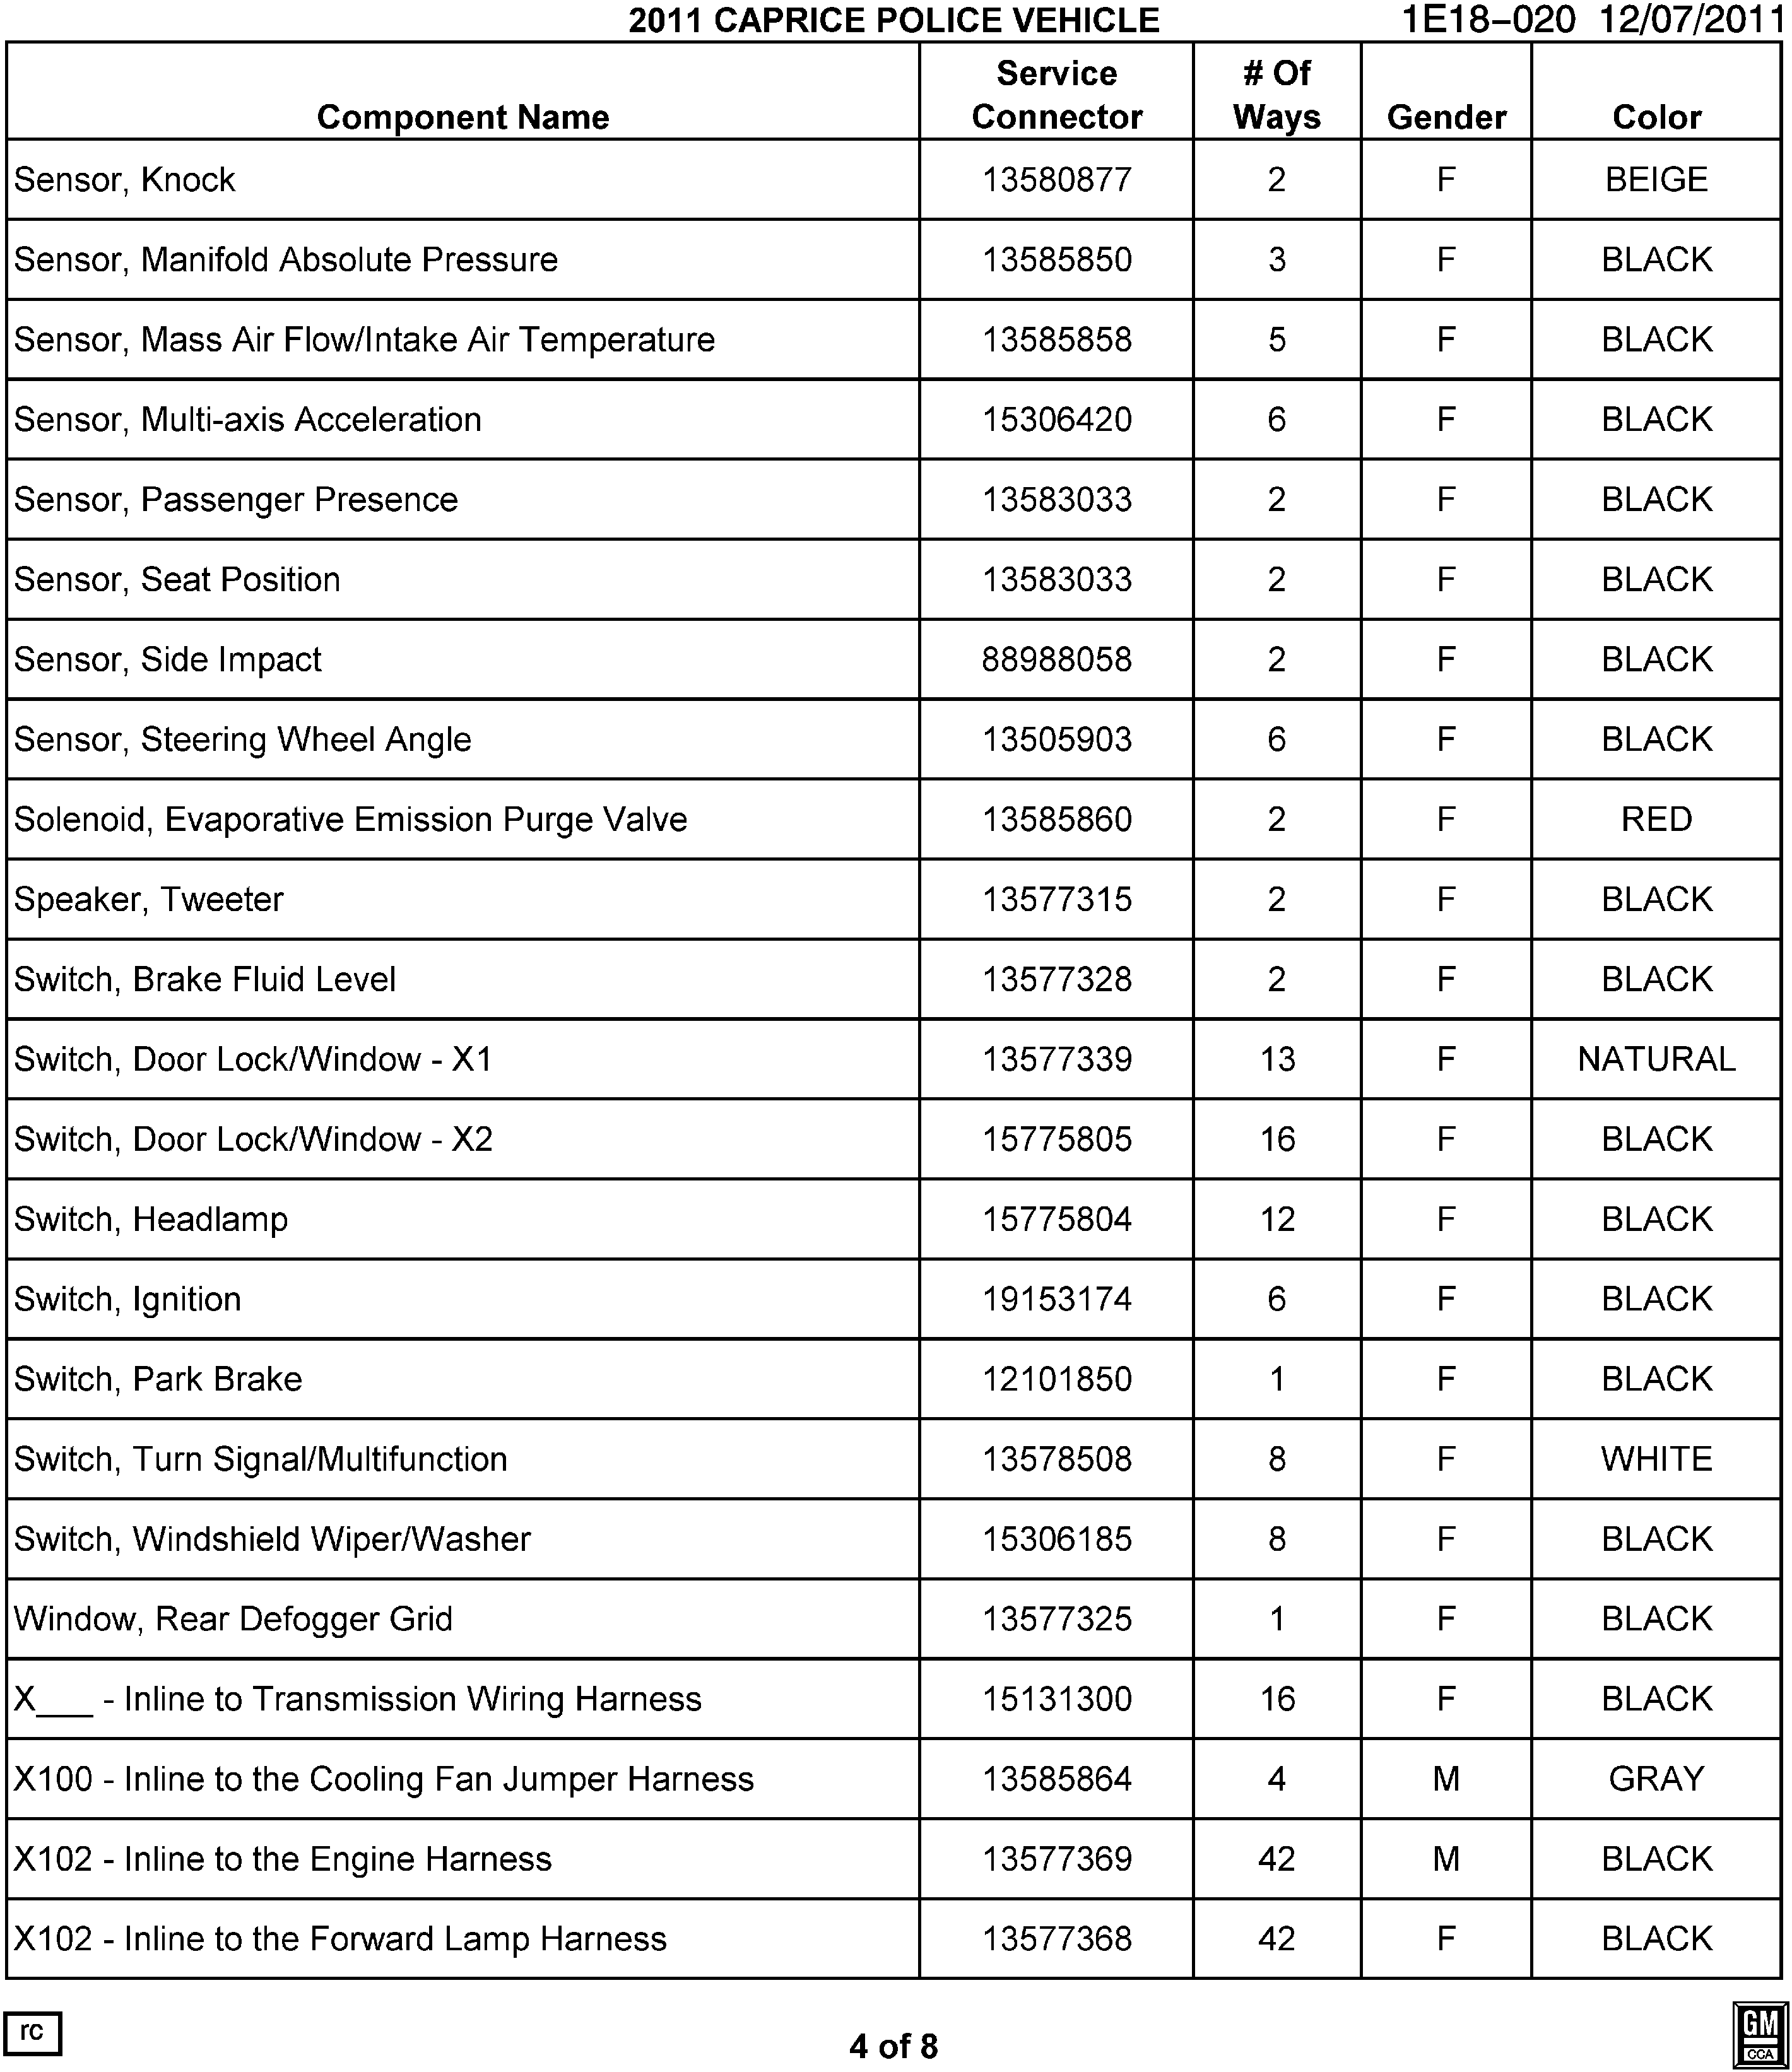 Caprice Police Vehicle Electrical Connector List By Noun Name